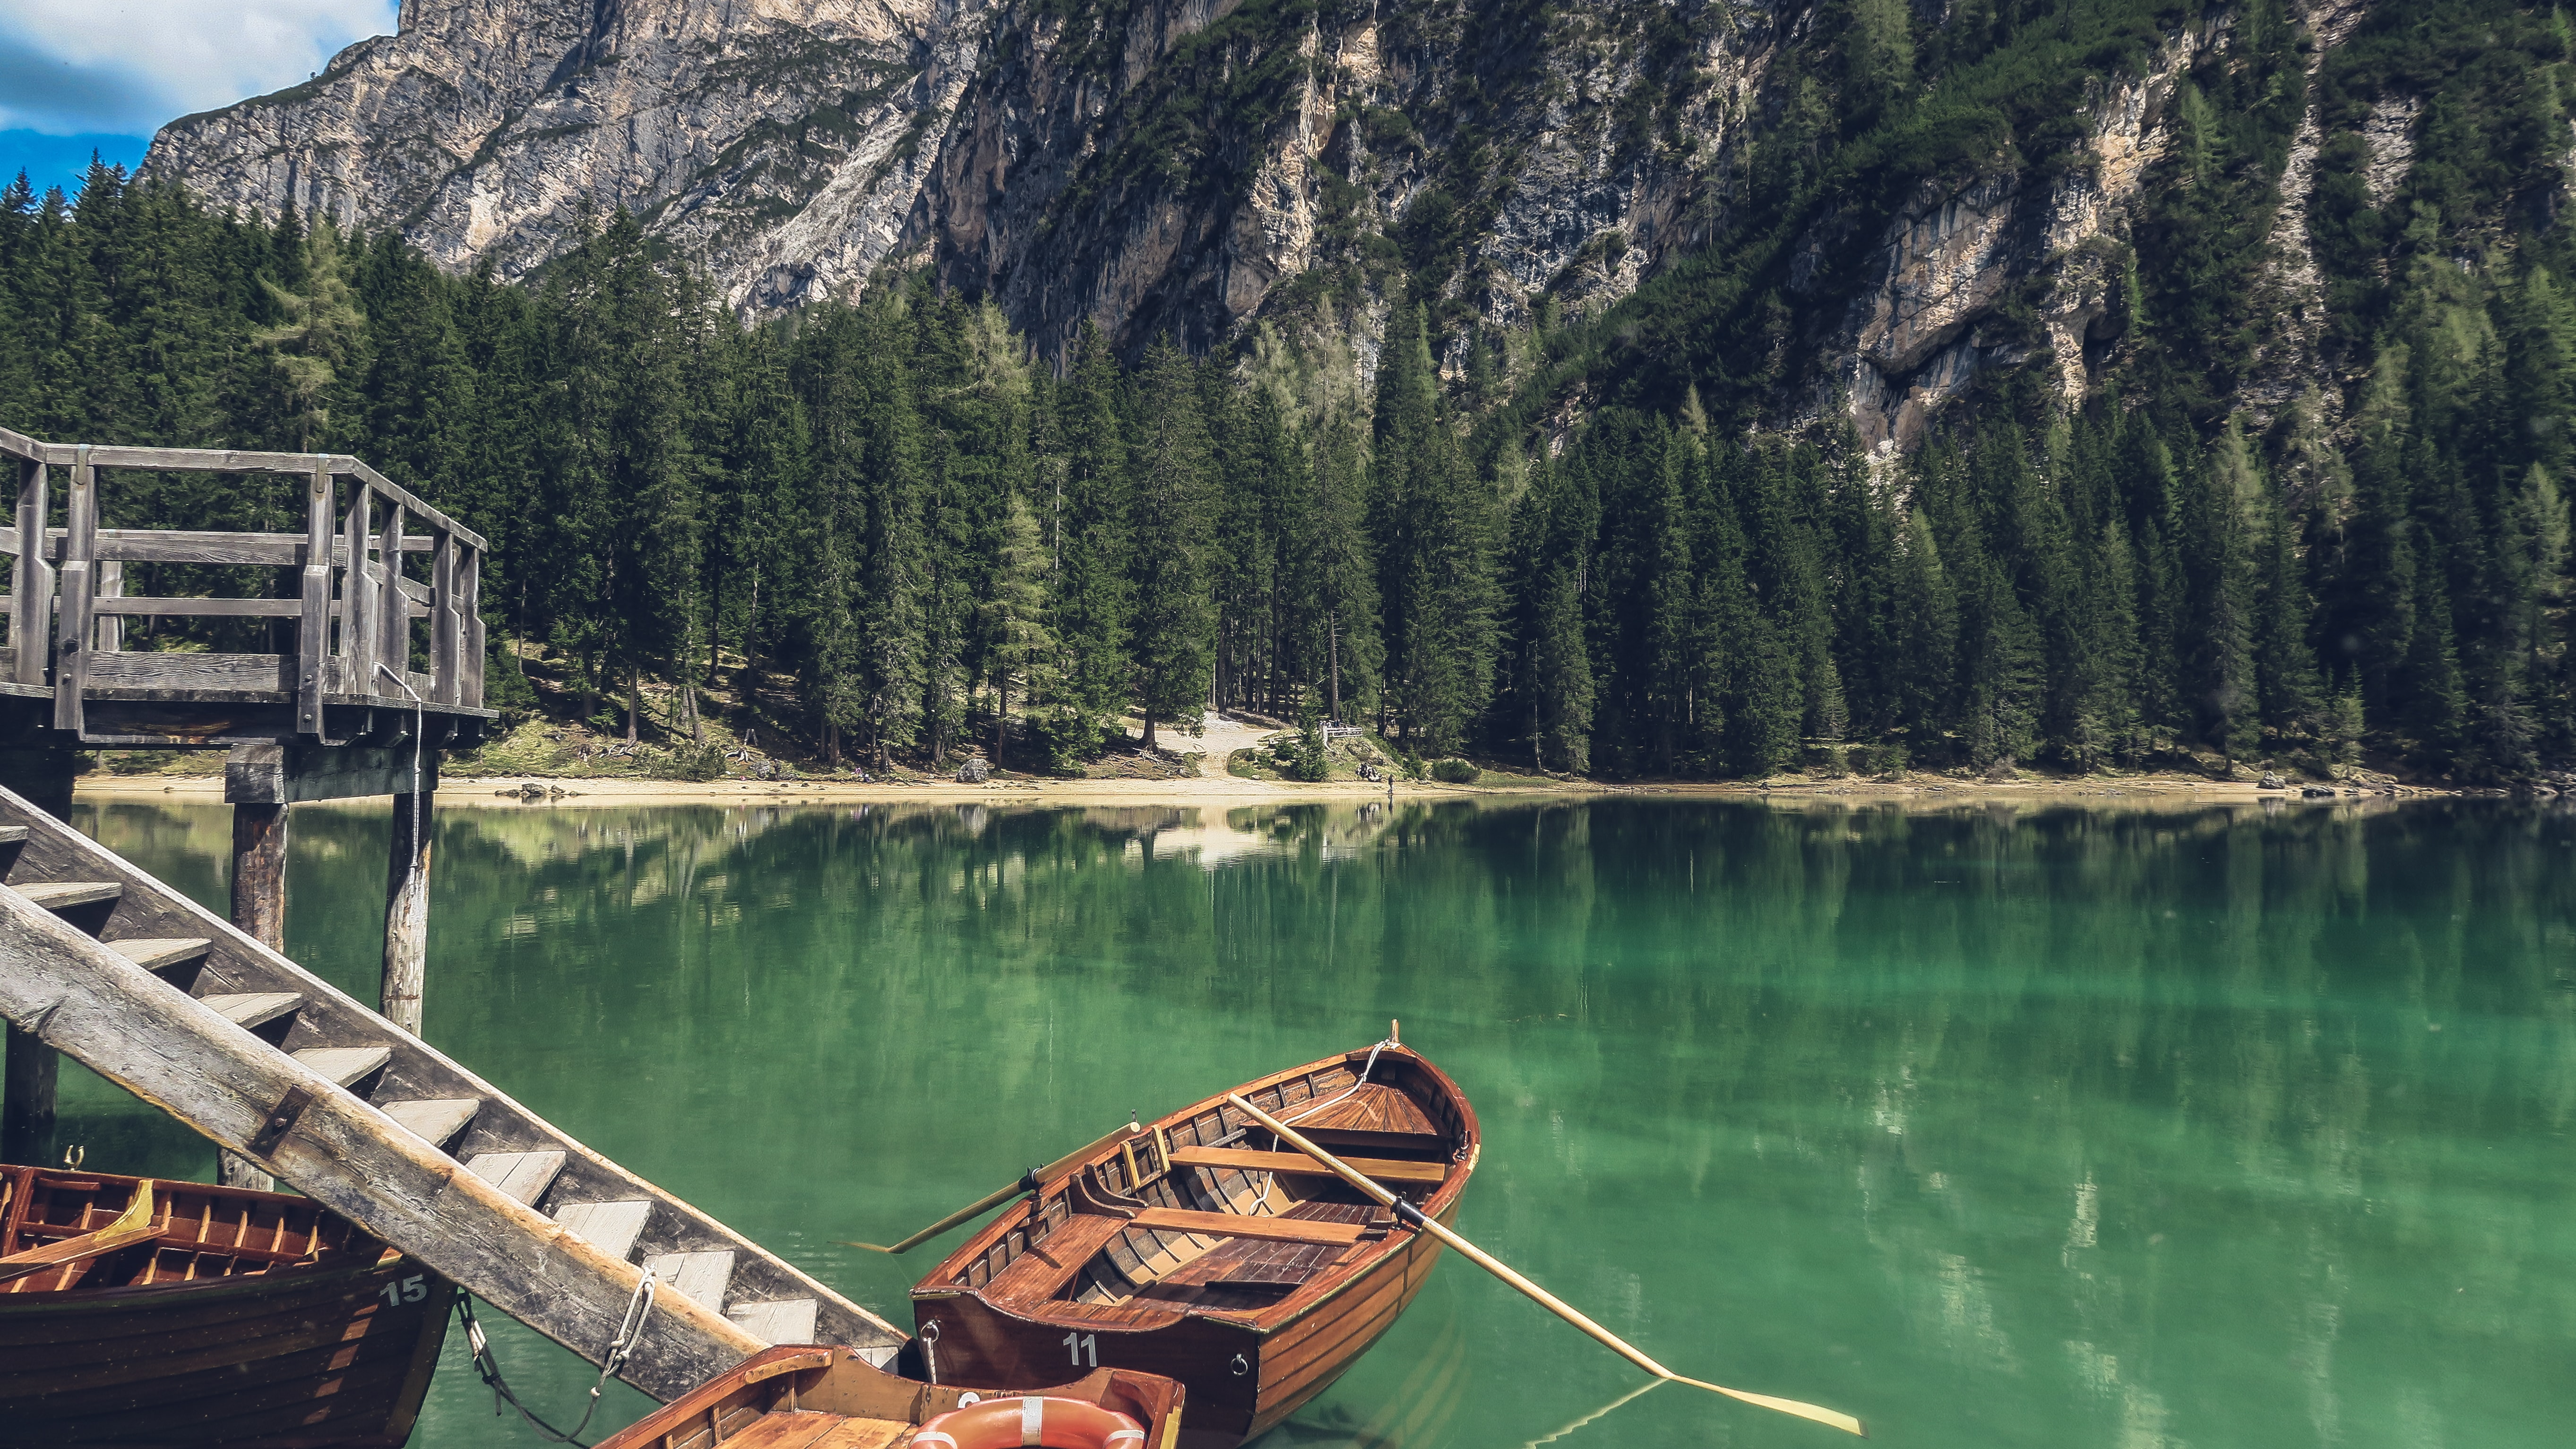 Wooden boats by a jetty on Lake Pragser Wildsee